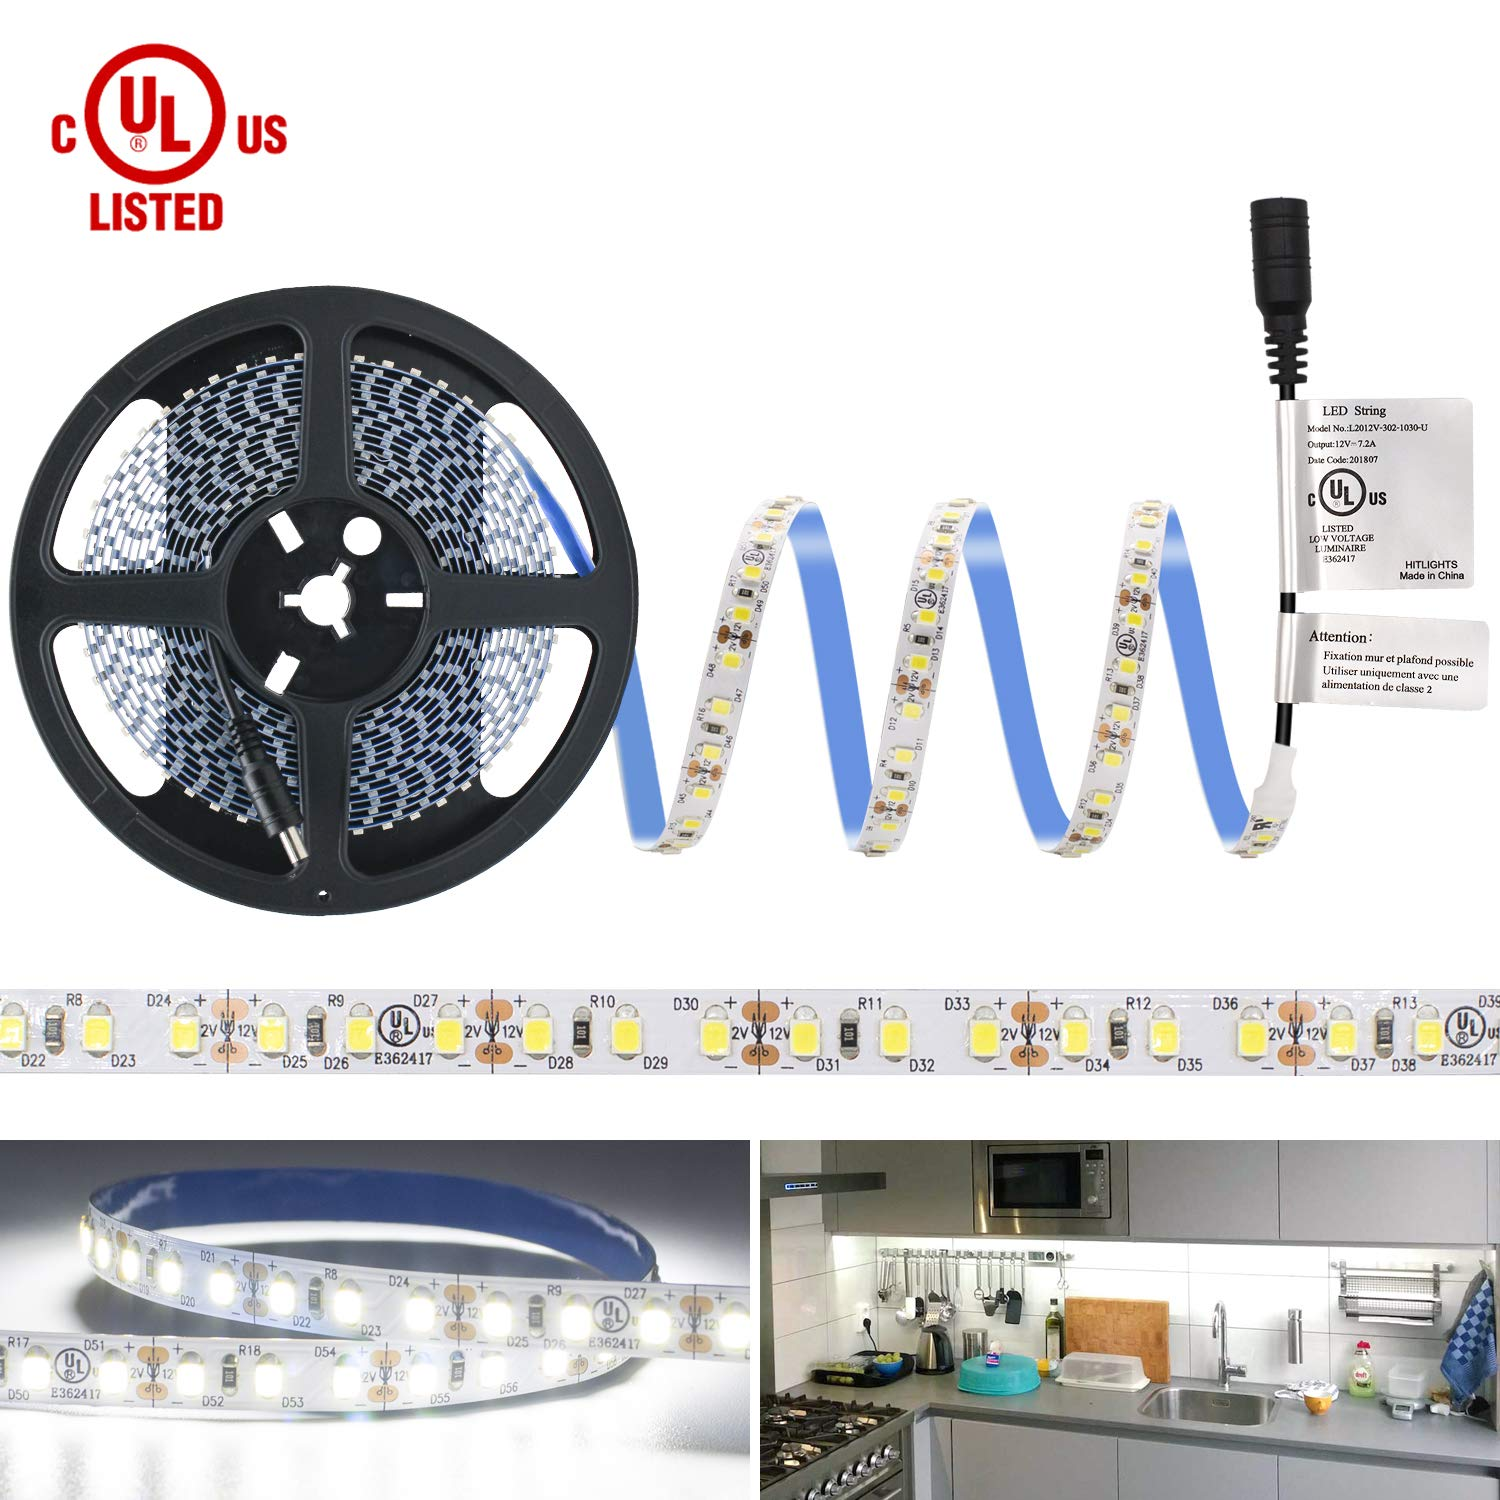 HitLights LED Strip Lights, UL-Listed Cool White LED Light Strip 600LED 5000K 164Lumens 2.7Watt per Ft. 12V LED Tape Lights for Kitchen, Under Cabinet